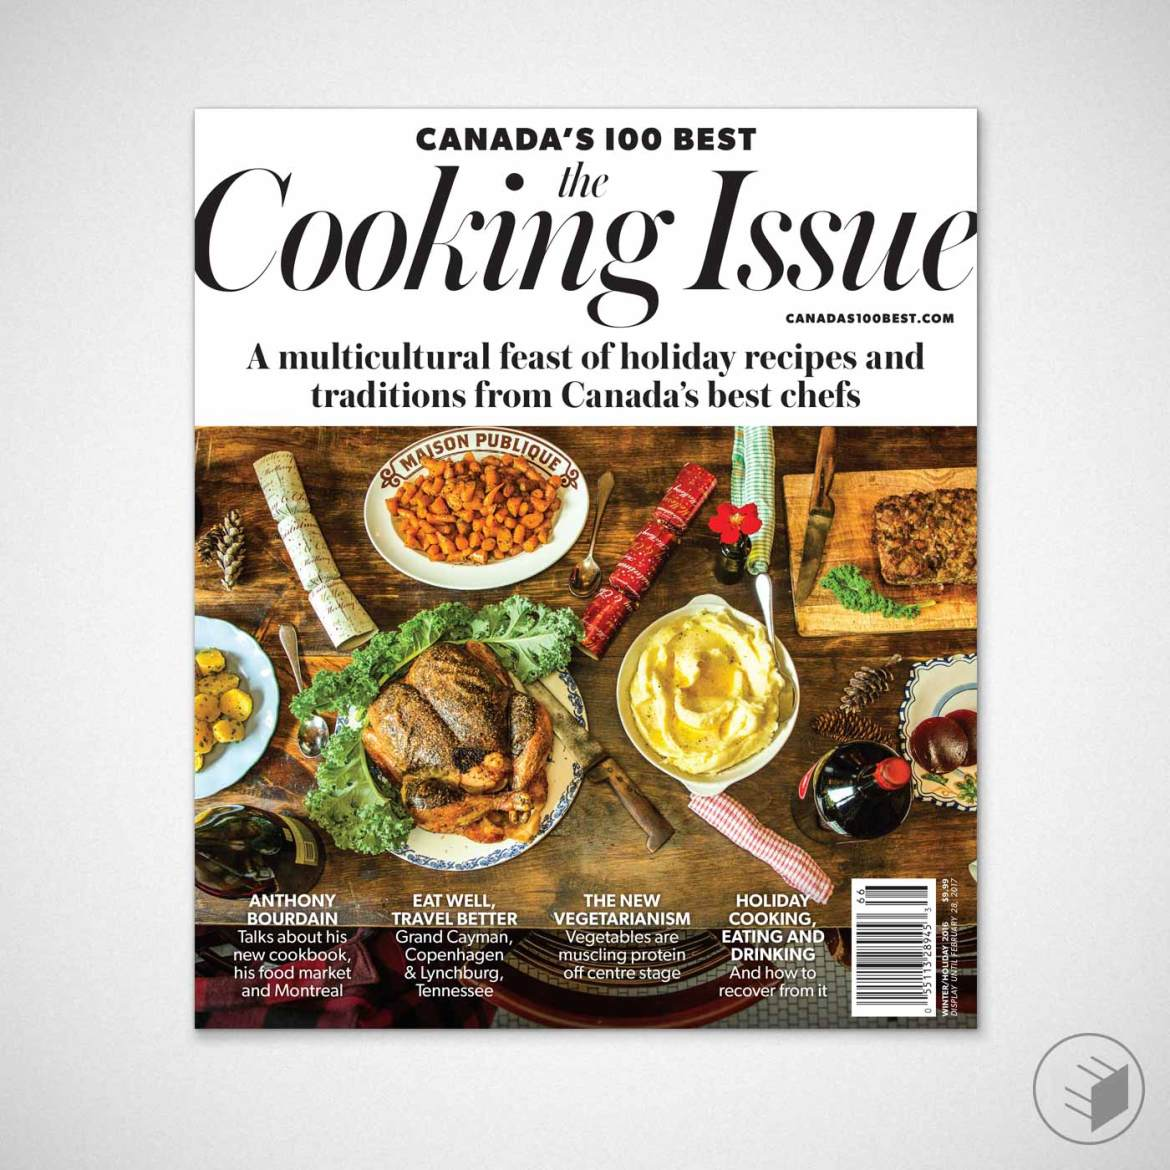 CANADA'S 100 BEST: THE COOKING ISSUE COVER